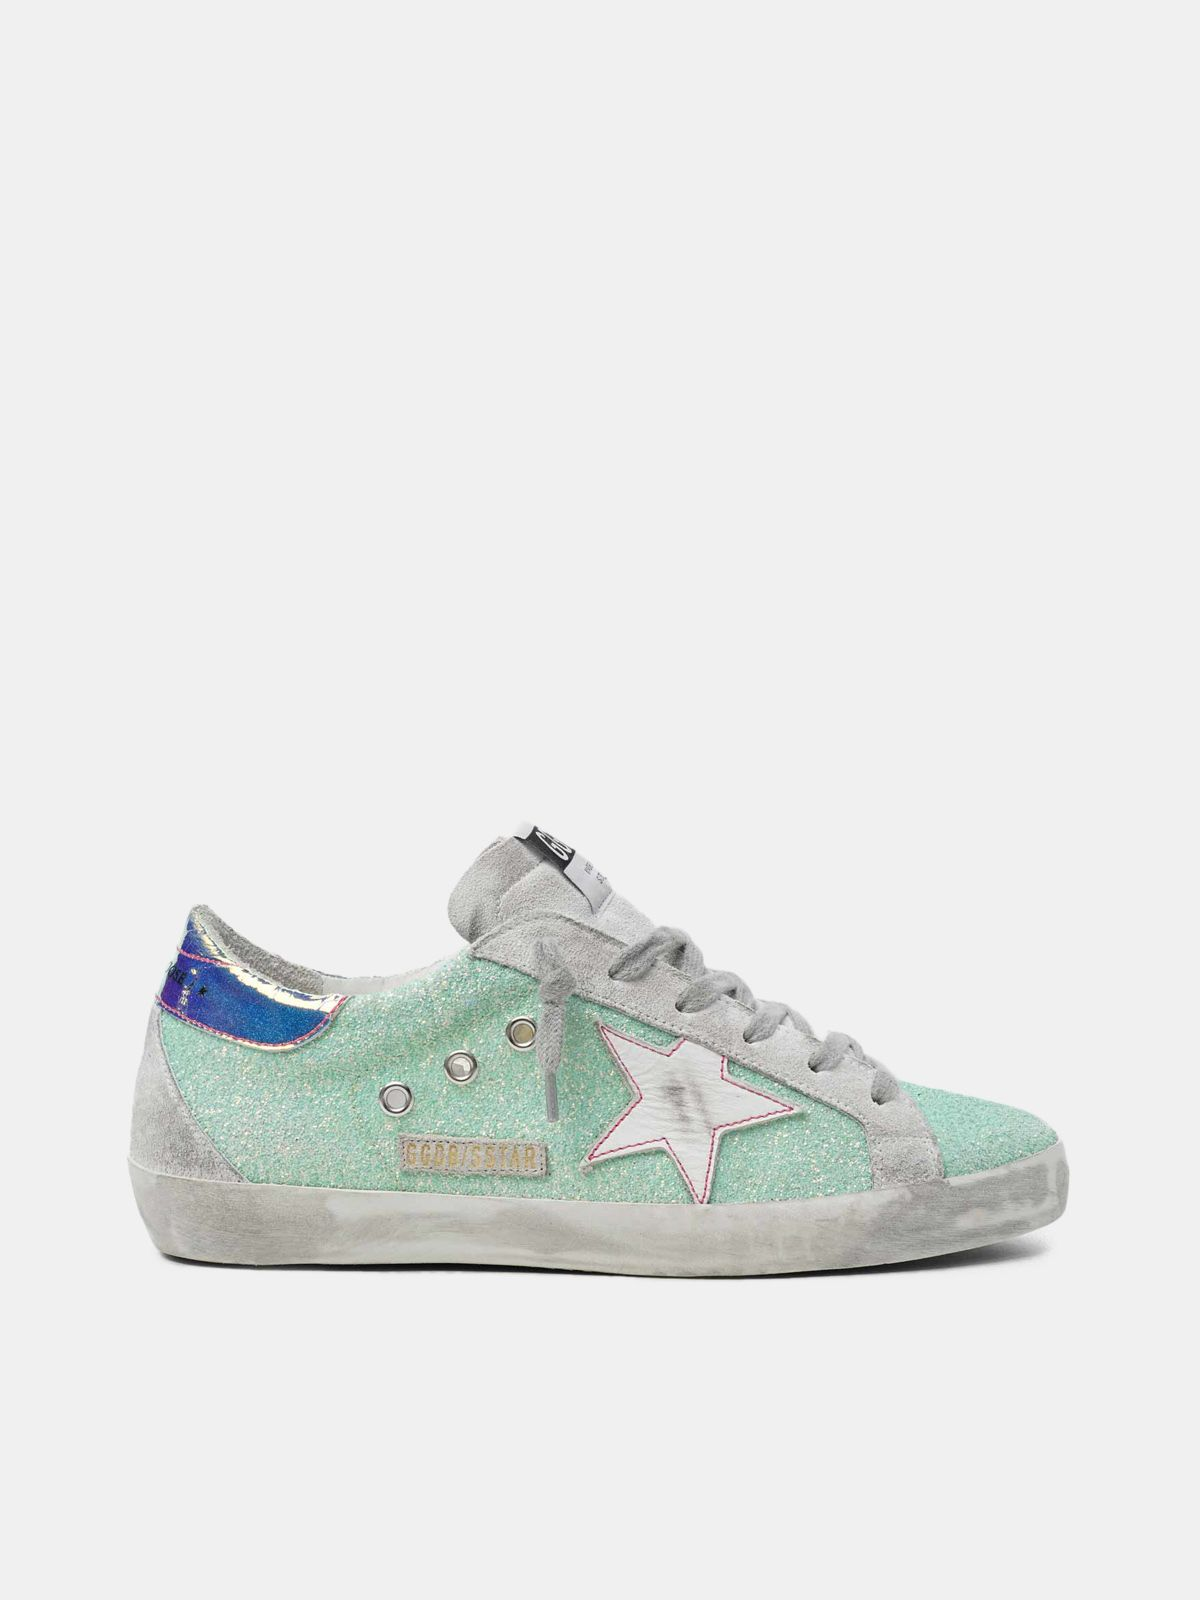 Super-Star sneakers with green glitter and chrome heel tab